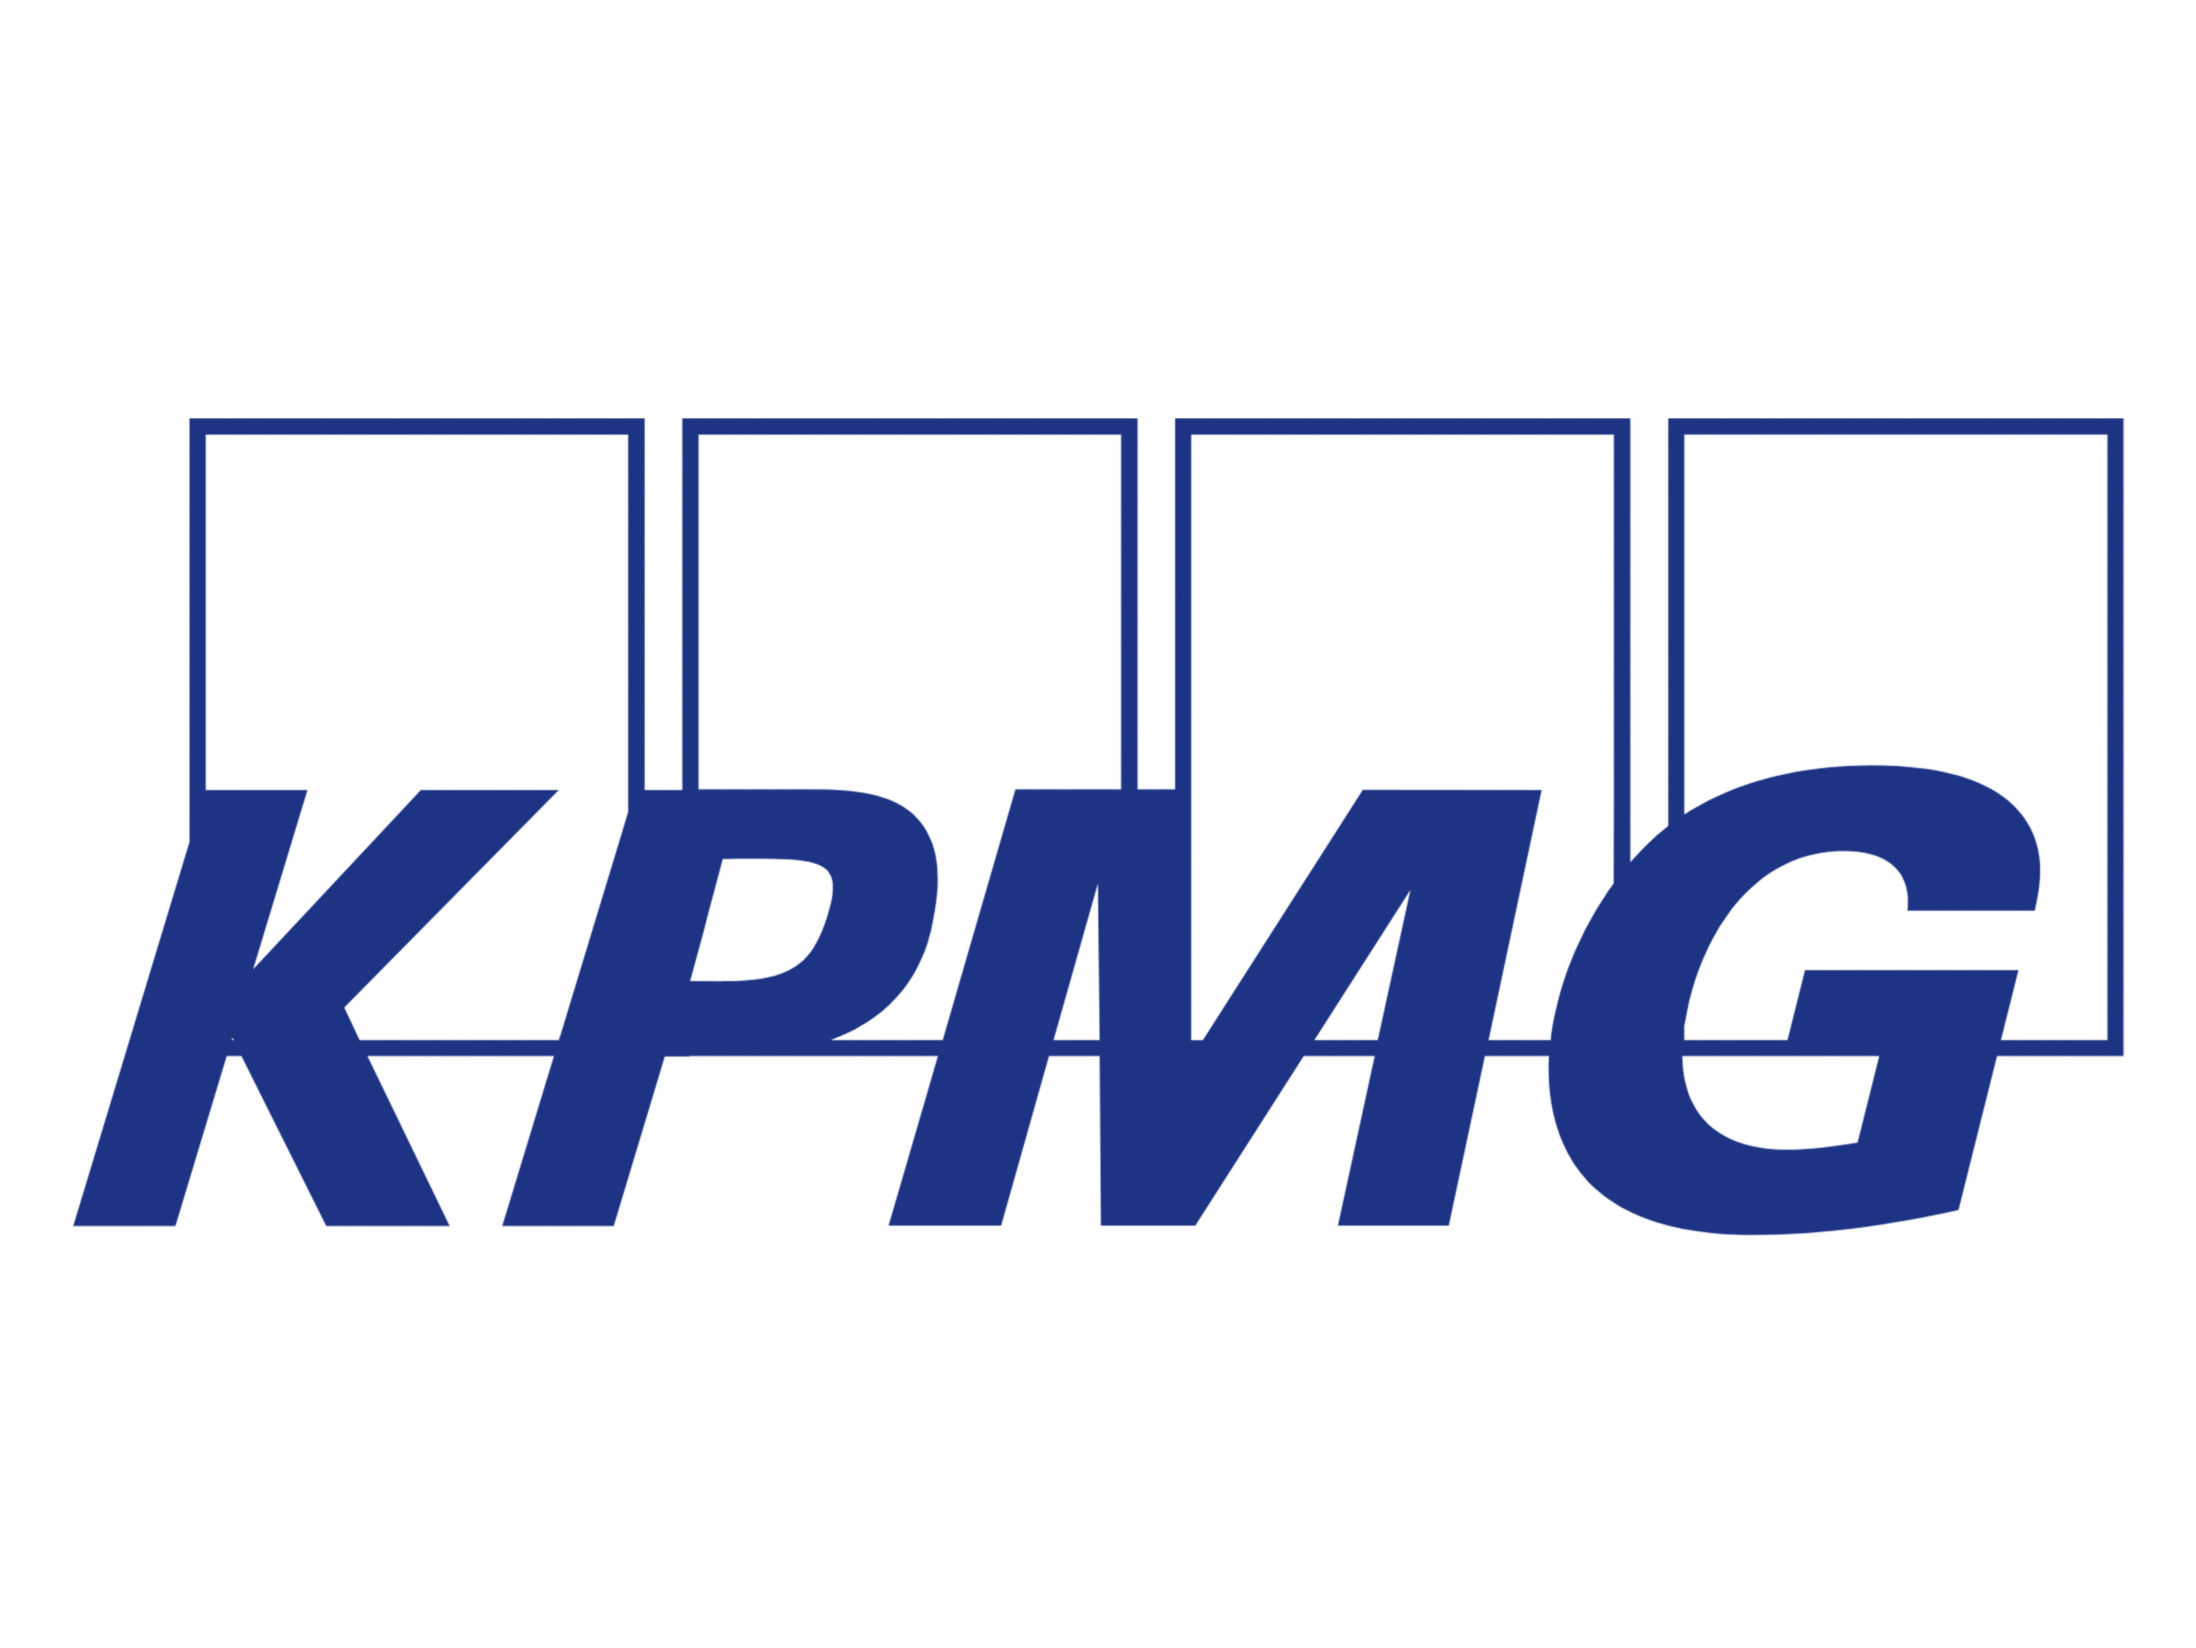 KPMG Team Building Review